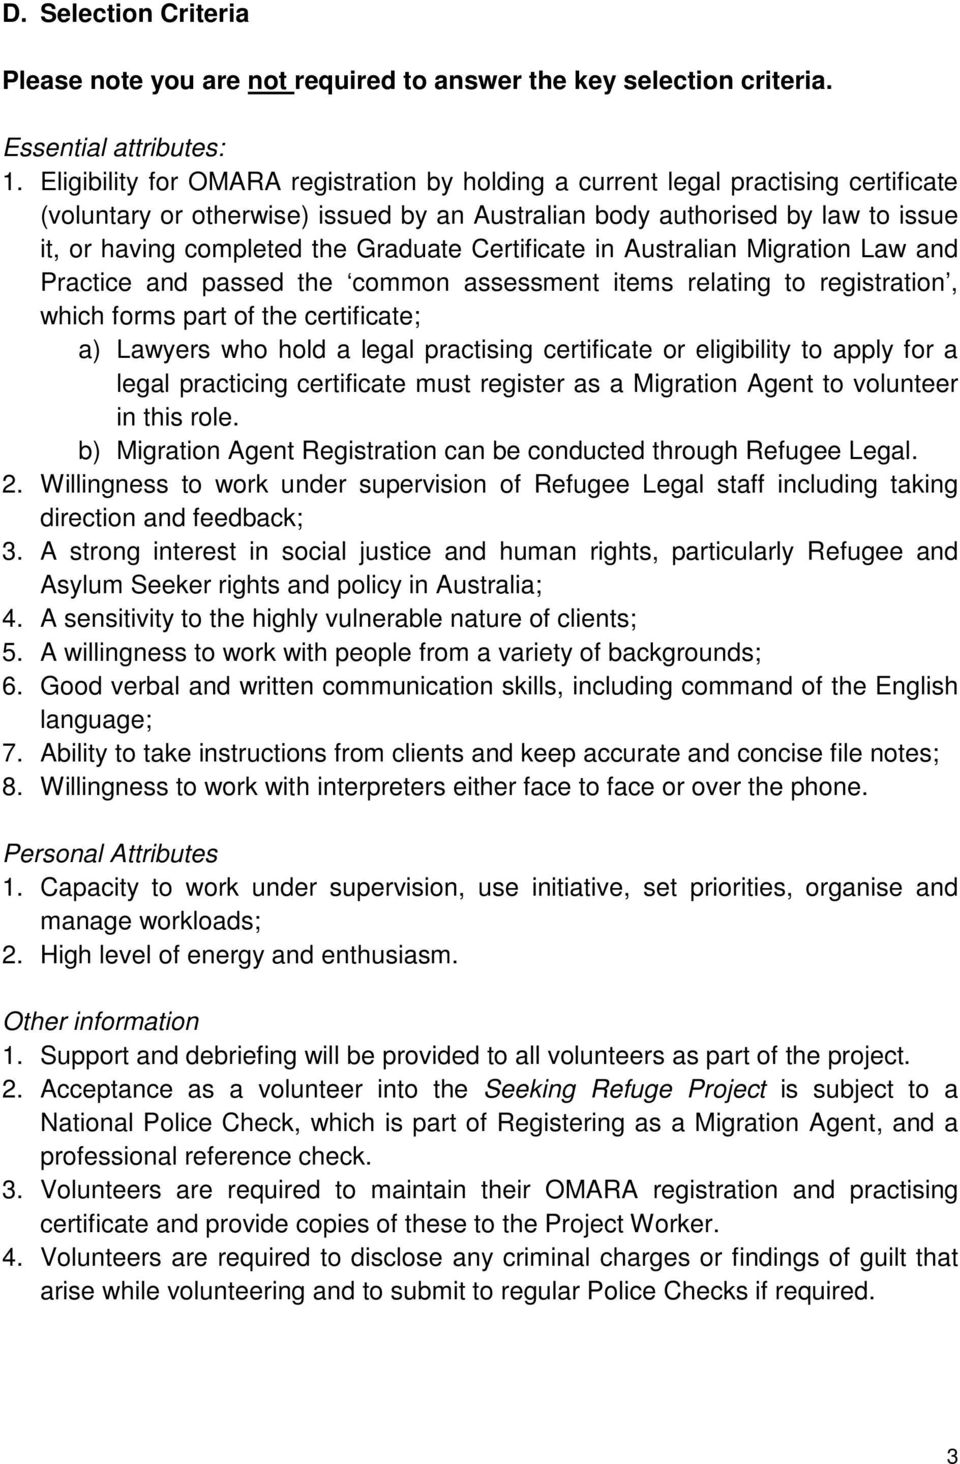 Graduate Certificate in Australian Migration Law and Practice and passed the common assessment items relating to registration, which forms part of the certificate; a) Lawyers who hold a legal